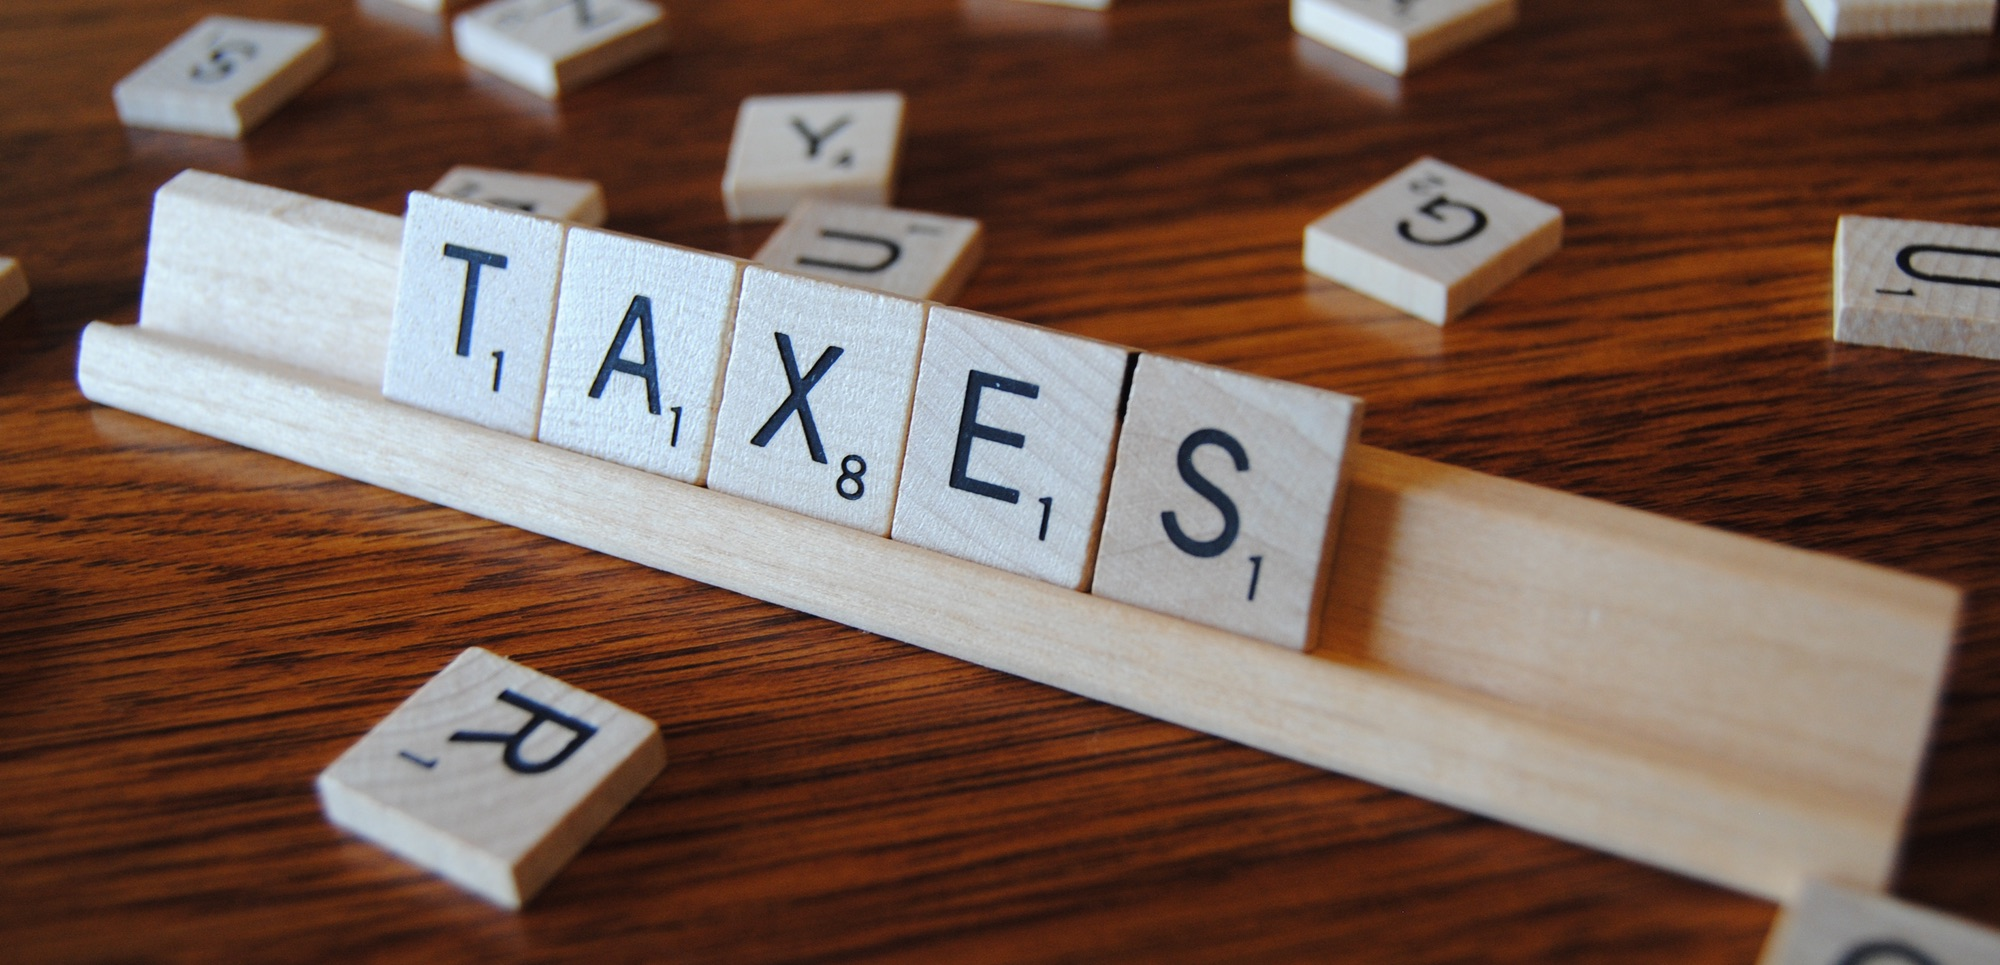 Should Freelancers File Taxes Quarterly Or Annually?